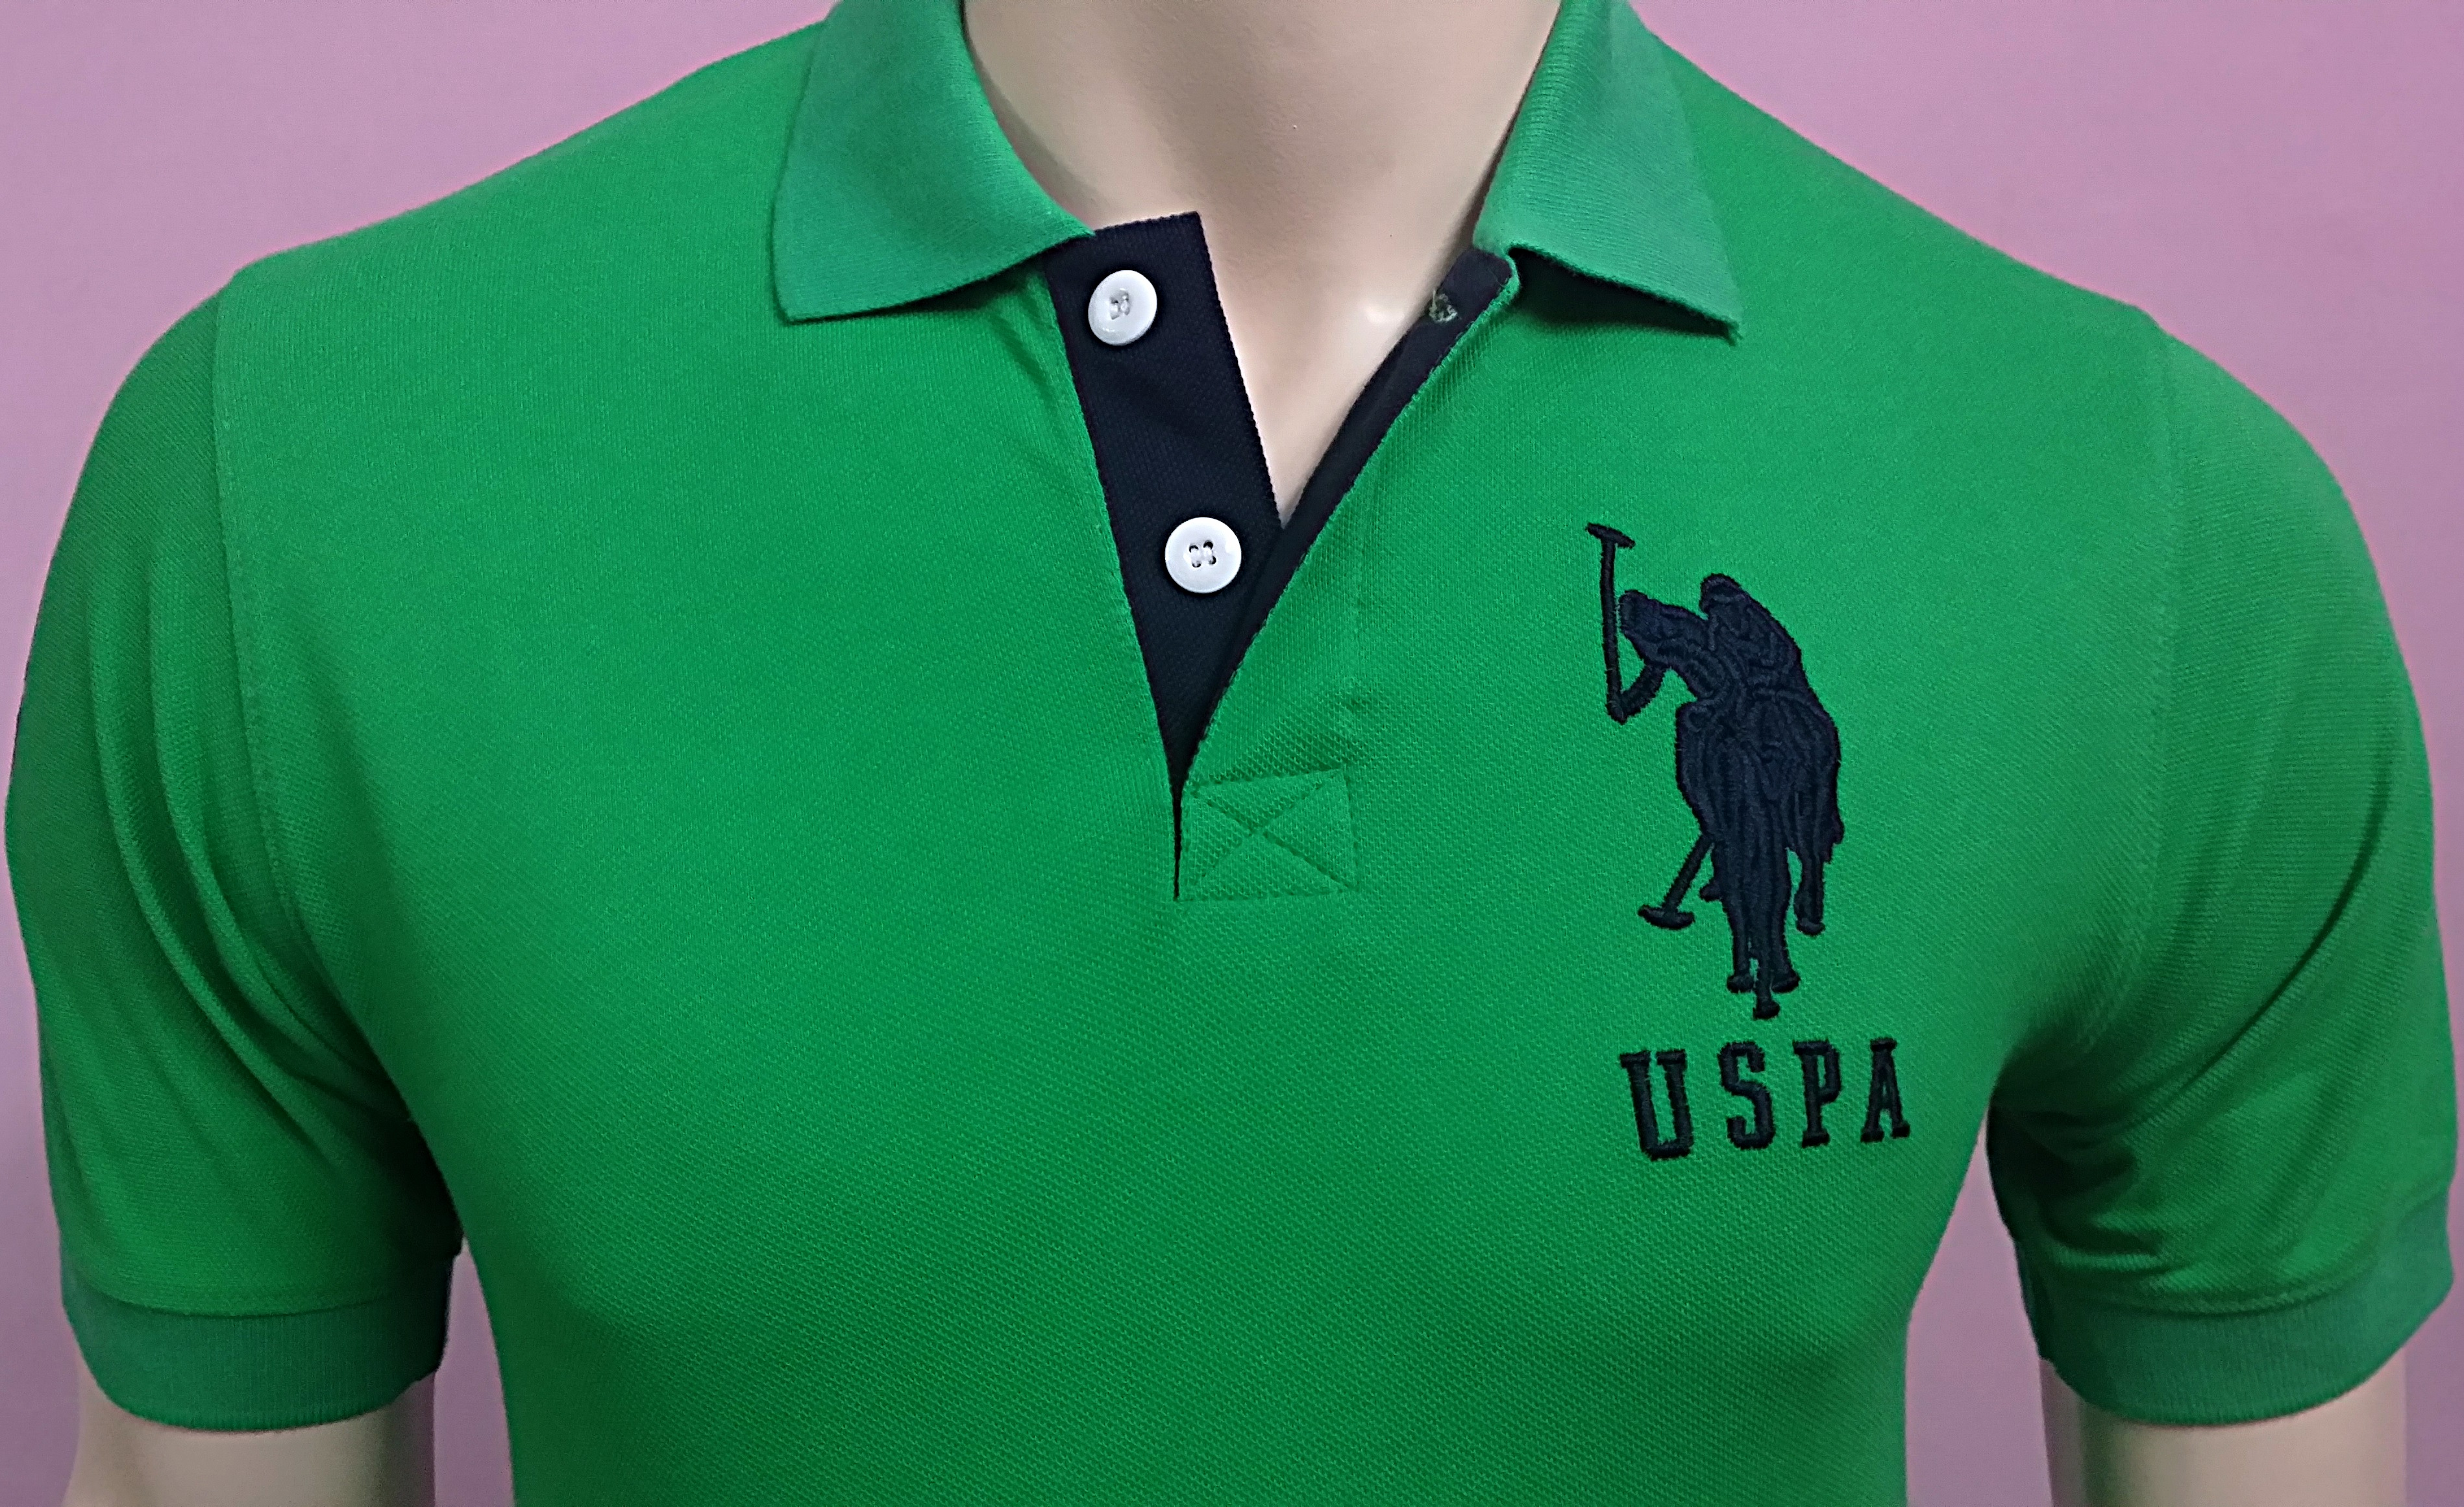 Us polo assn t shirts amazon india for Polo t shirts india